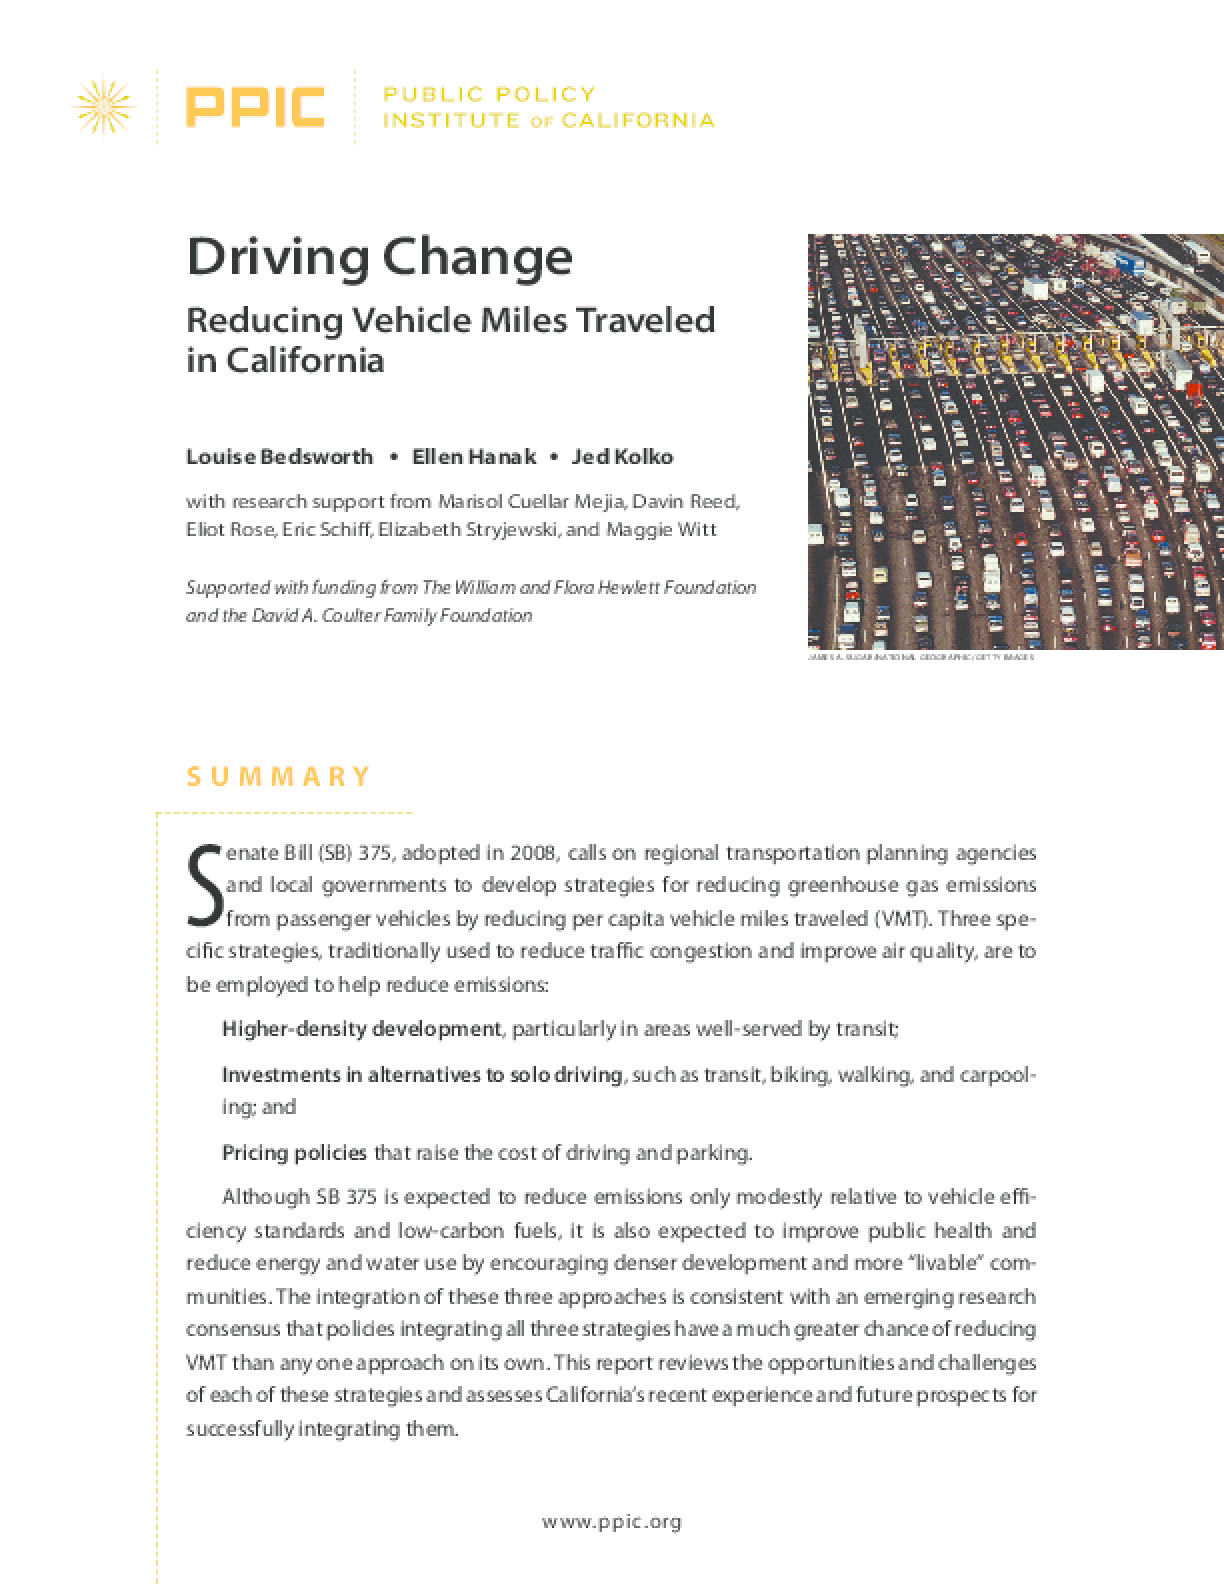 Driving Change: Reducing Vehicle Miles Traveled in California